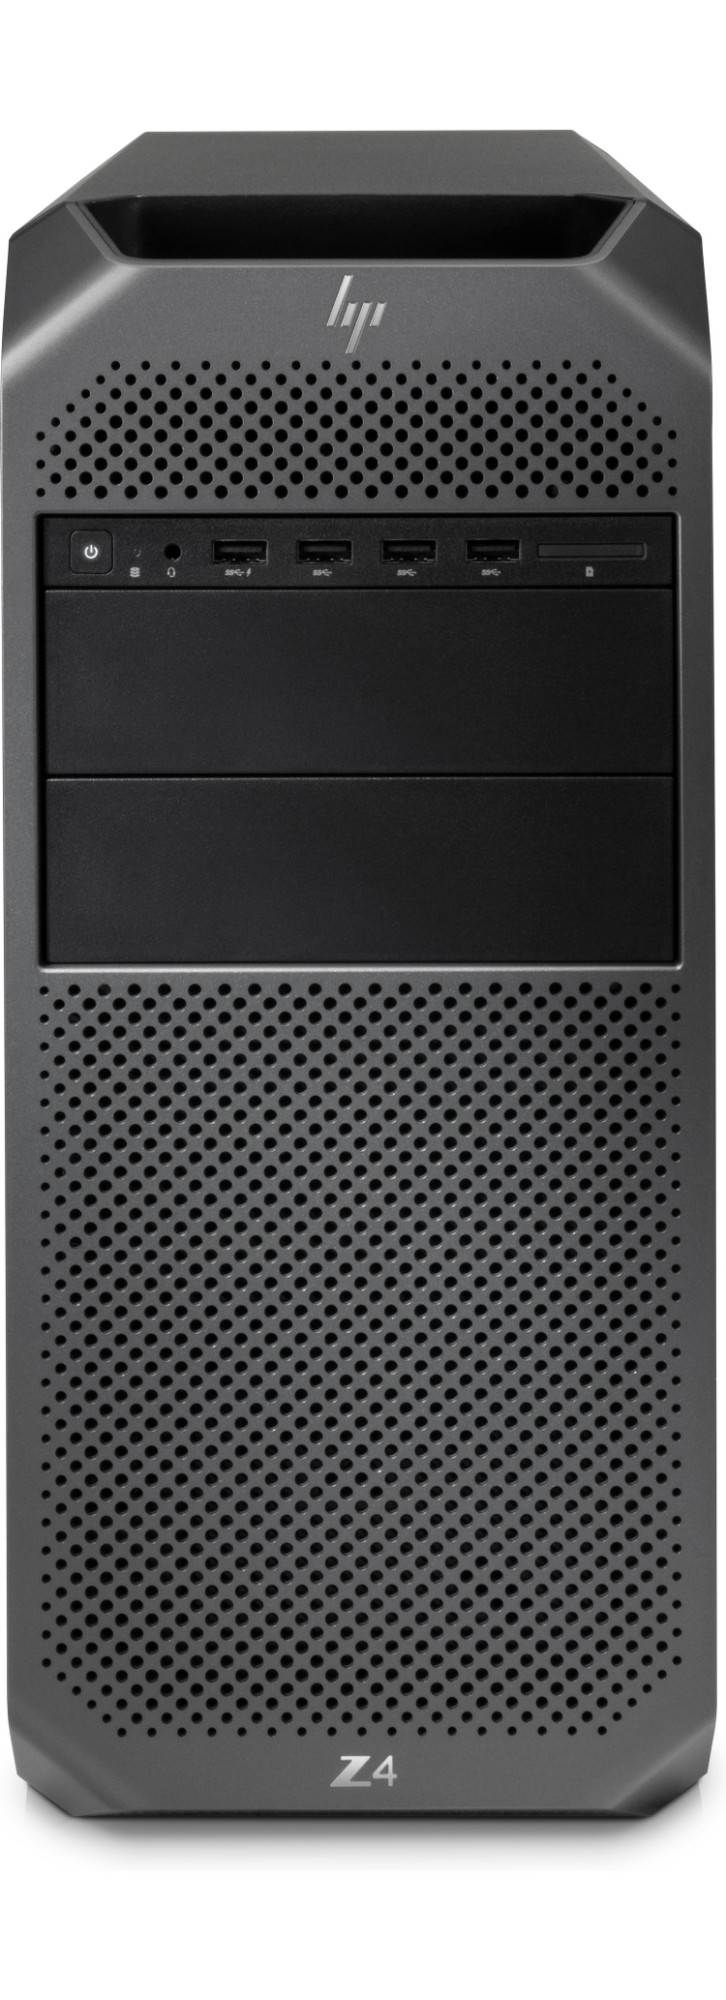 hp z4 g4 2 9 ghz intel xeon w w 2102 black tower. Black Bedroom Furniture Sets. Home Design Ideas